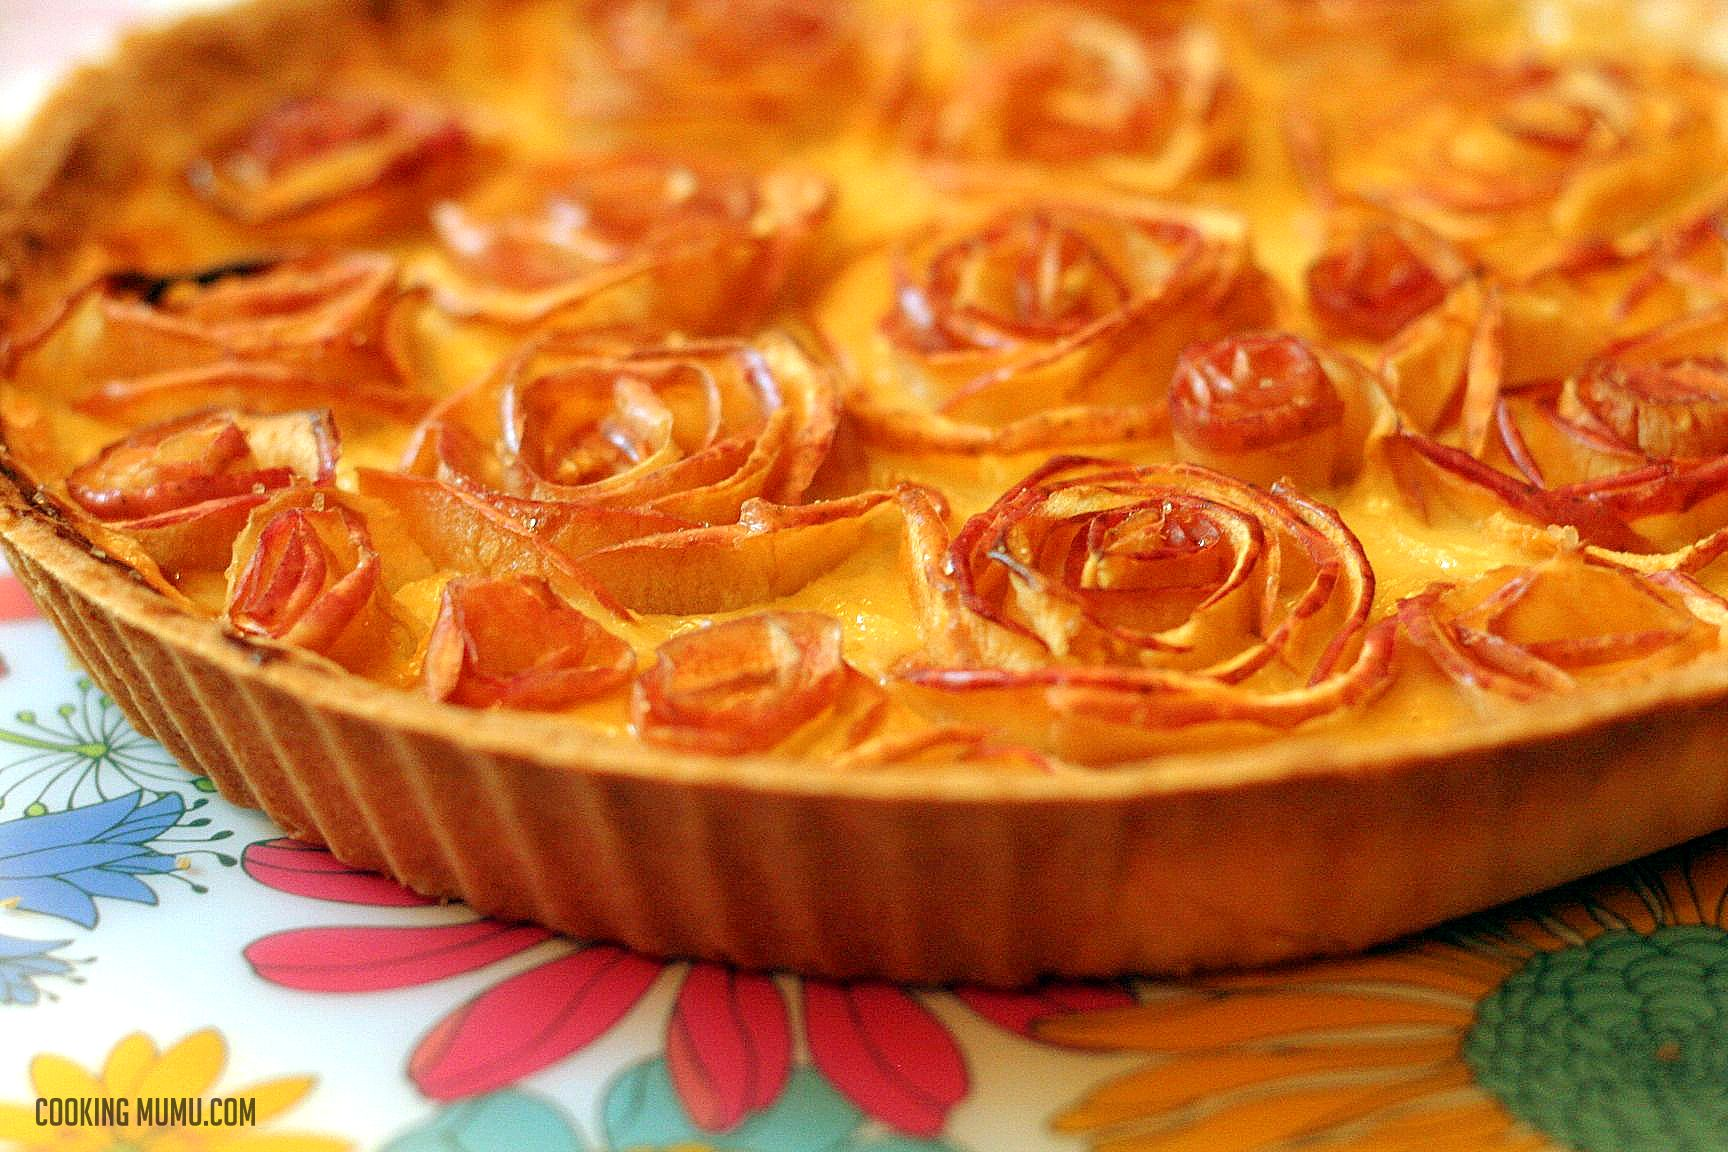 tarte aux pommes en fleurs option caramel beurre sal pour madame cooking mumu. Black Bedroom Furniture Sets. Home Design Ideas